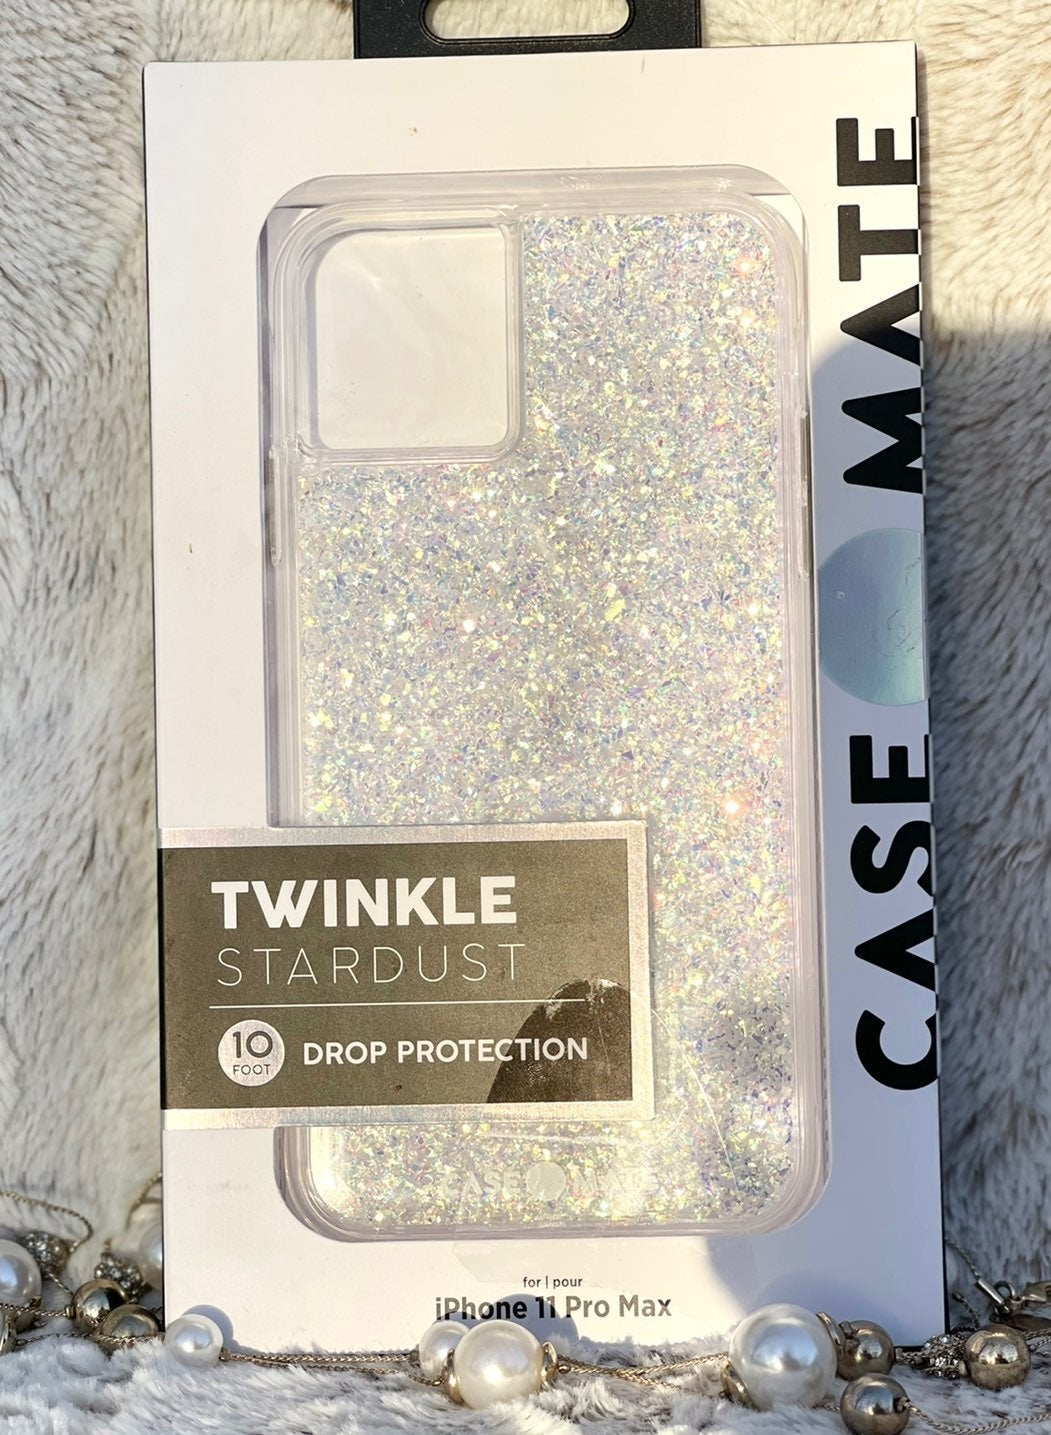 New Case Mate Twinkle Stardust iphone